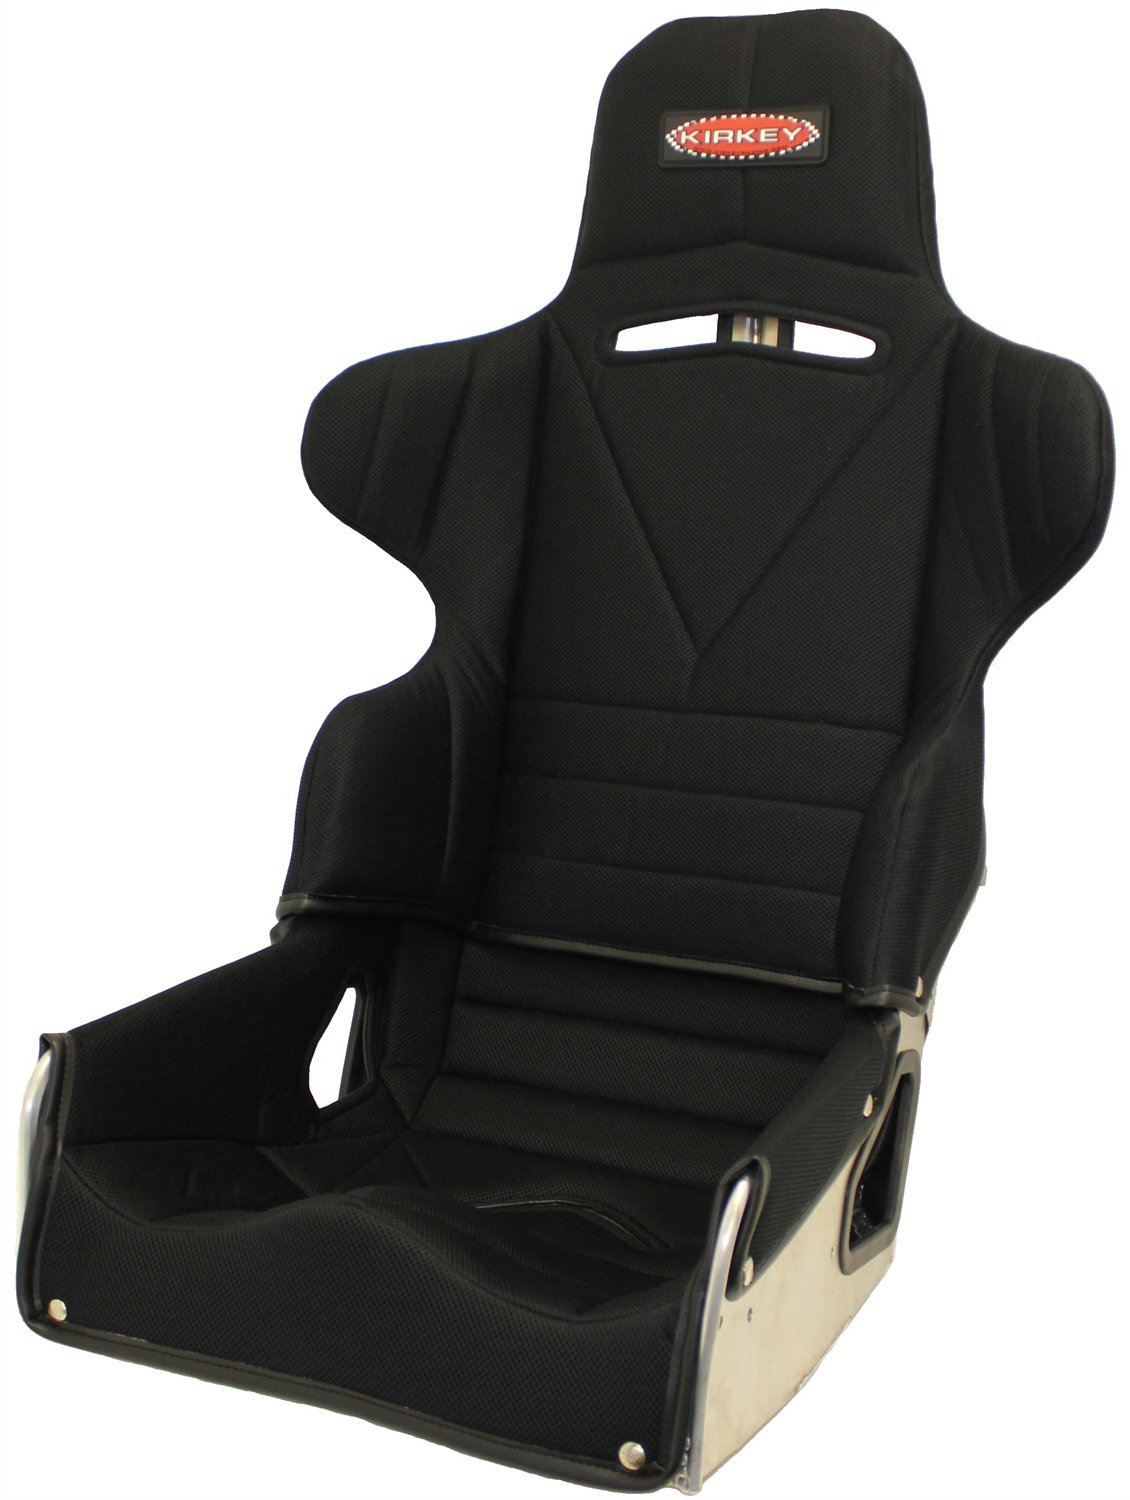 Kirkey 24300 Child Seat 13in Child Seat